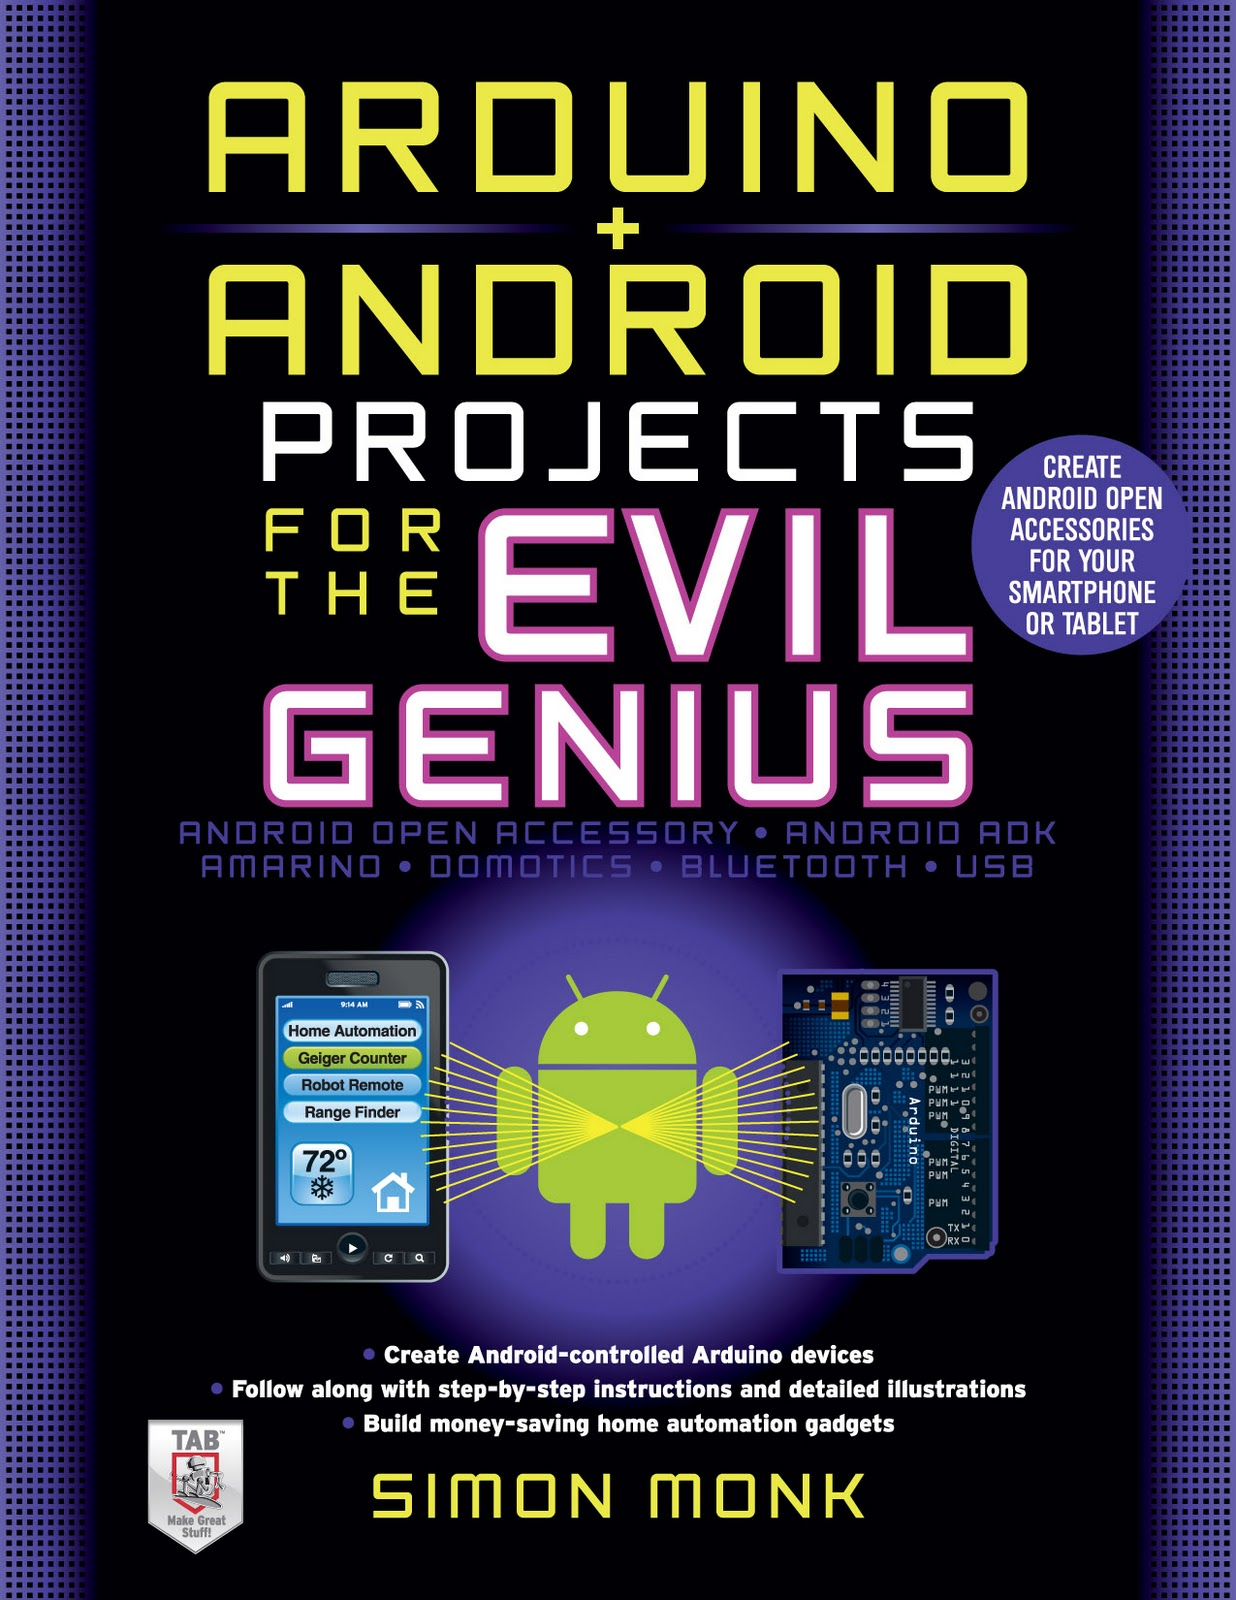 Dr Monks Diy Electronics Blog September 2011 Arduino Beer Thermostat Schematics Android Projects For The Evil Genius